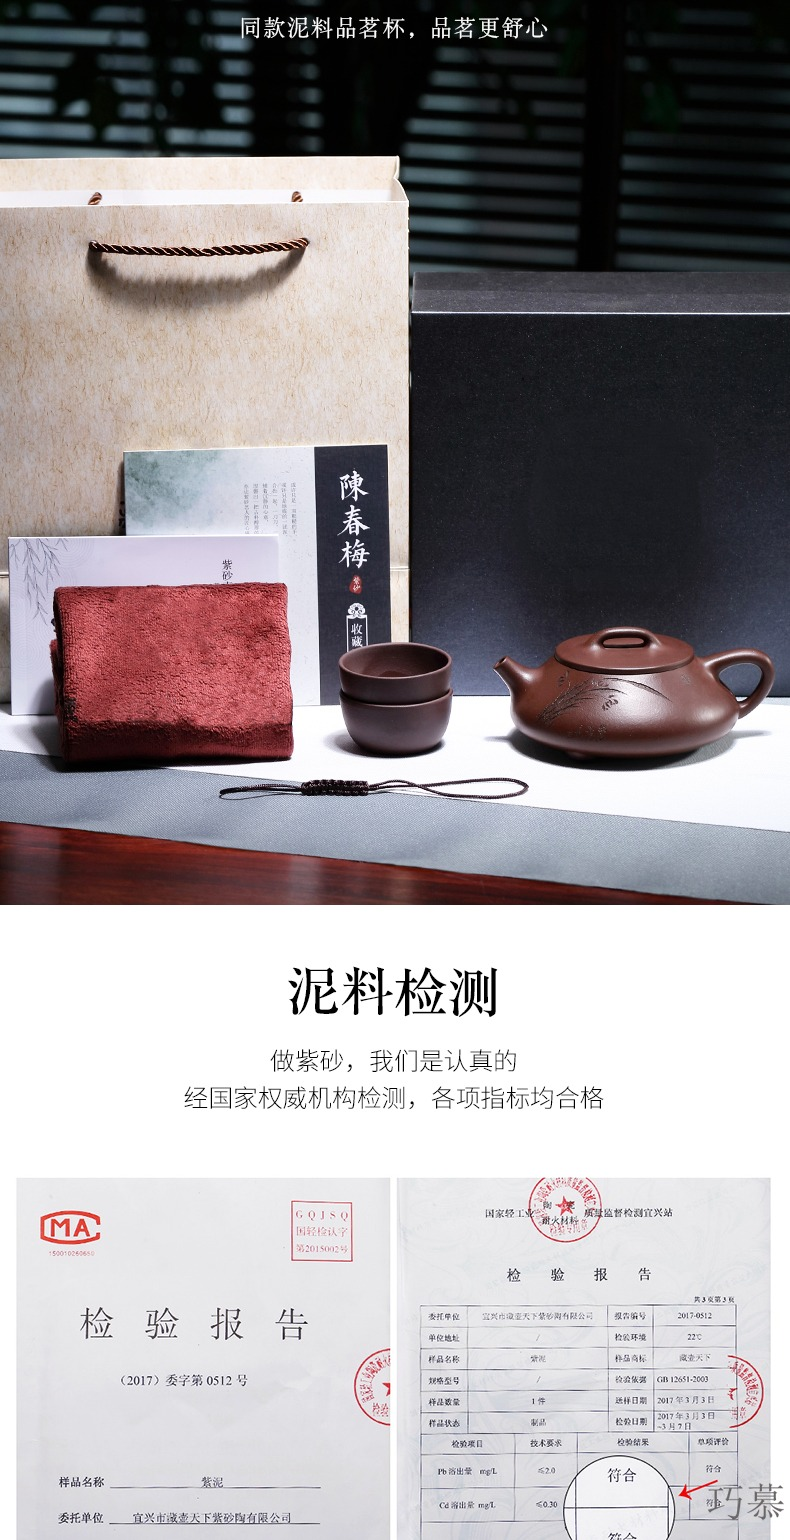 Qiao mu YH yixing undressed ore purple clay mud it pure masters all hand stone gourd ladle pot of kung fu tea set the teapot